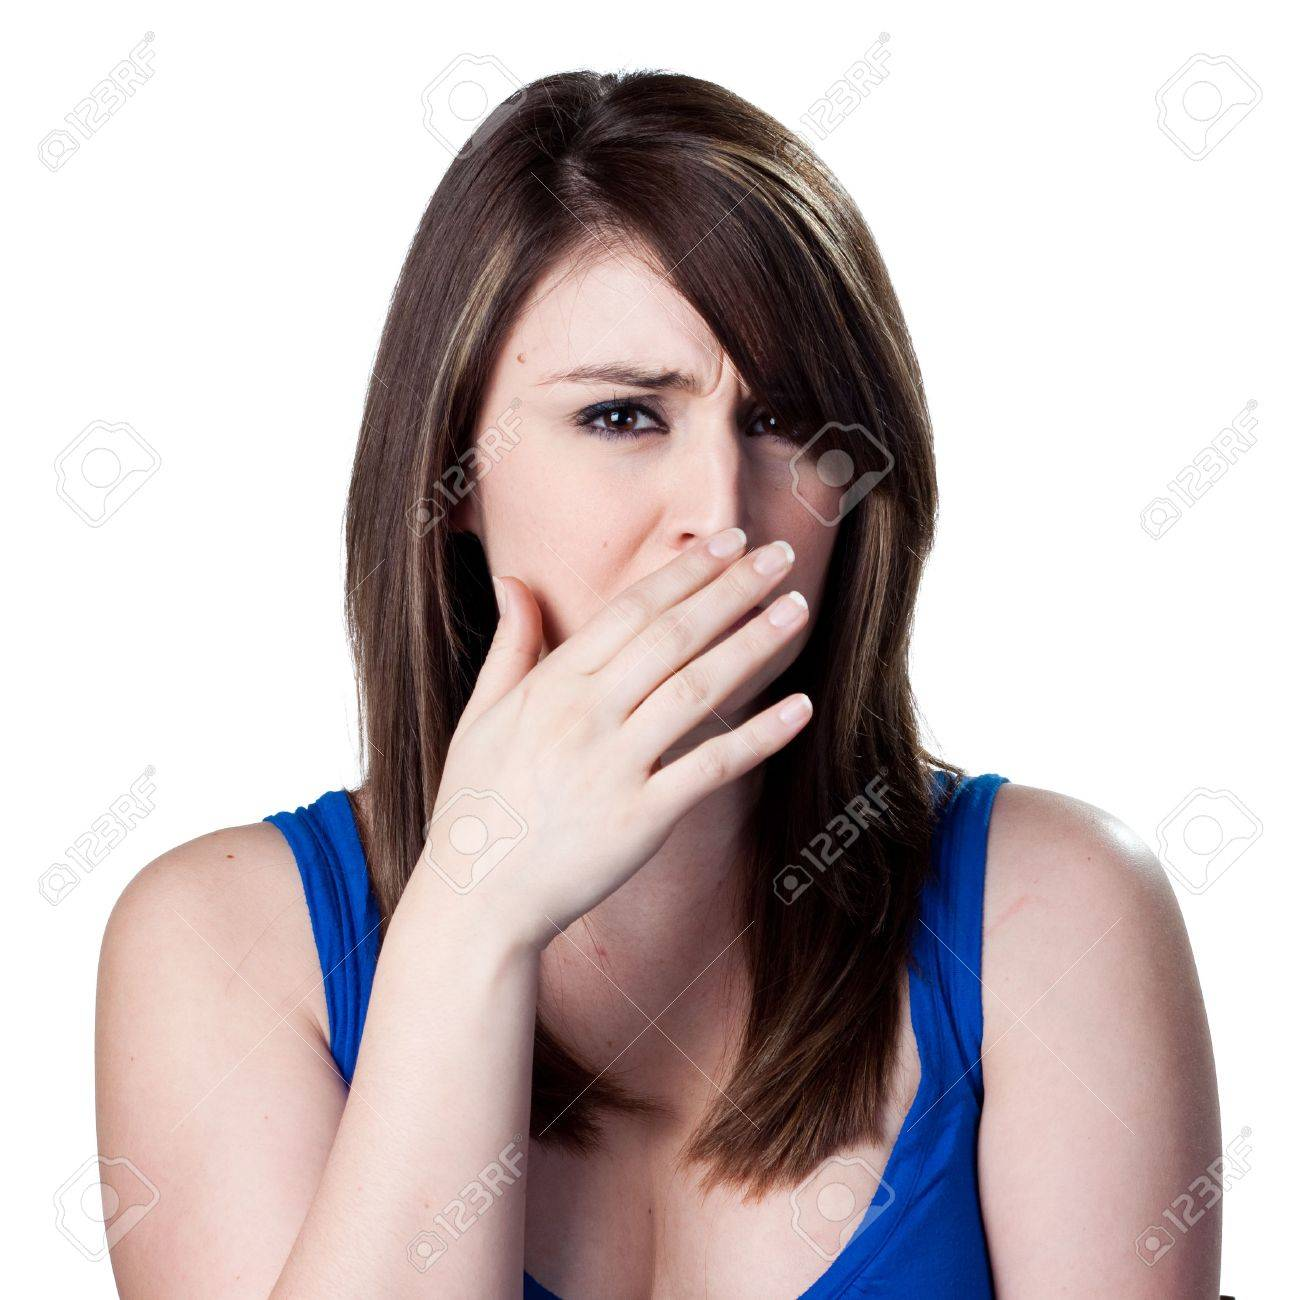 Covering her nose after a bad smell Stock Photo - 6906924